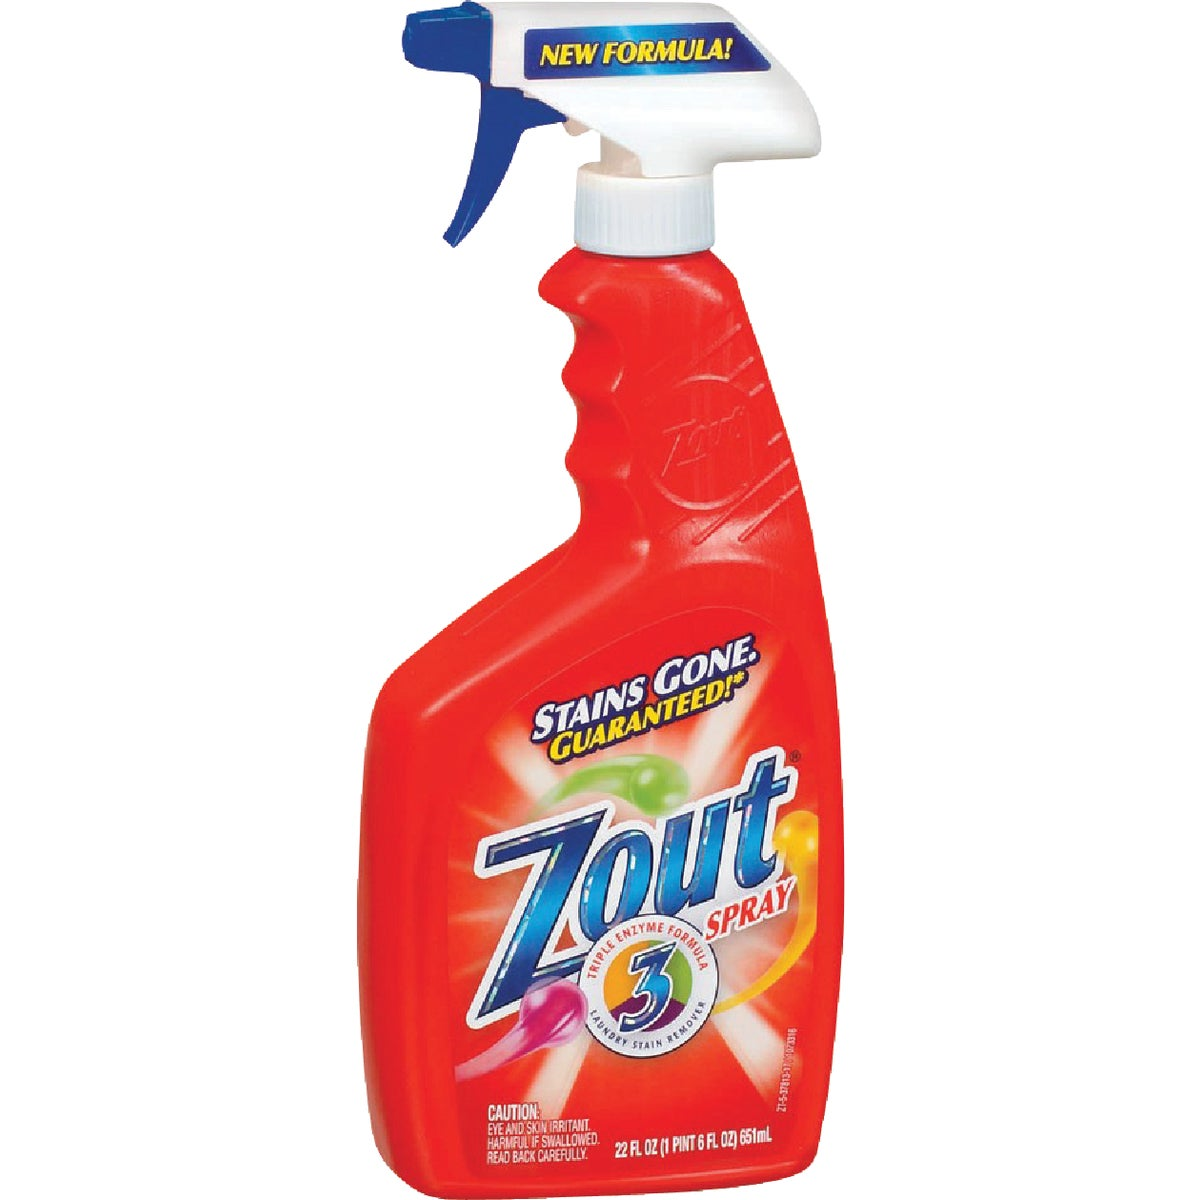 22OZ ZOUT STAIN REMOVER